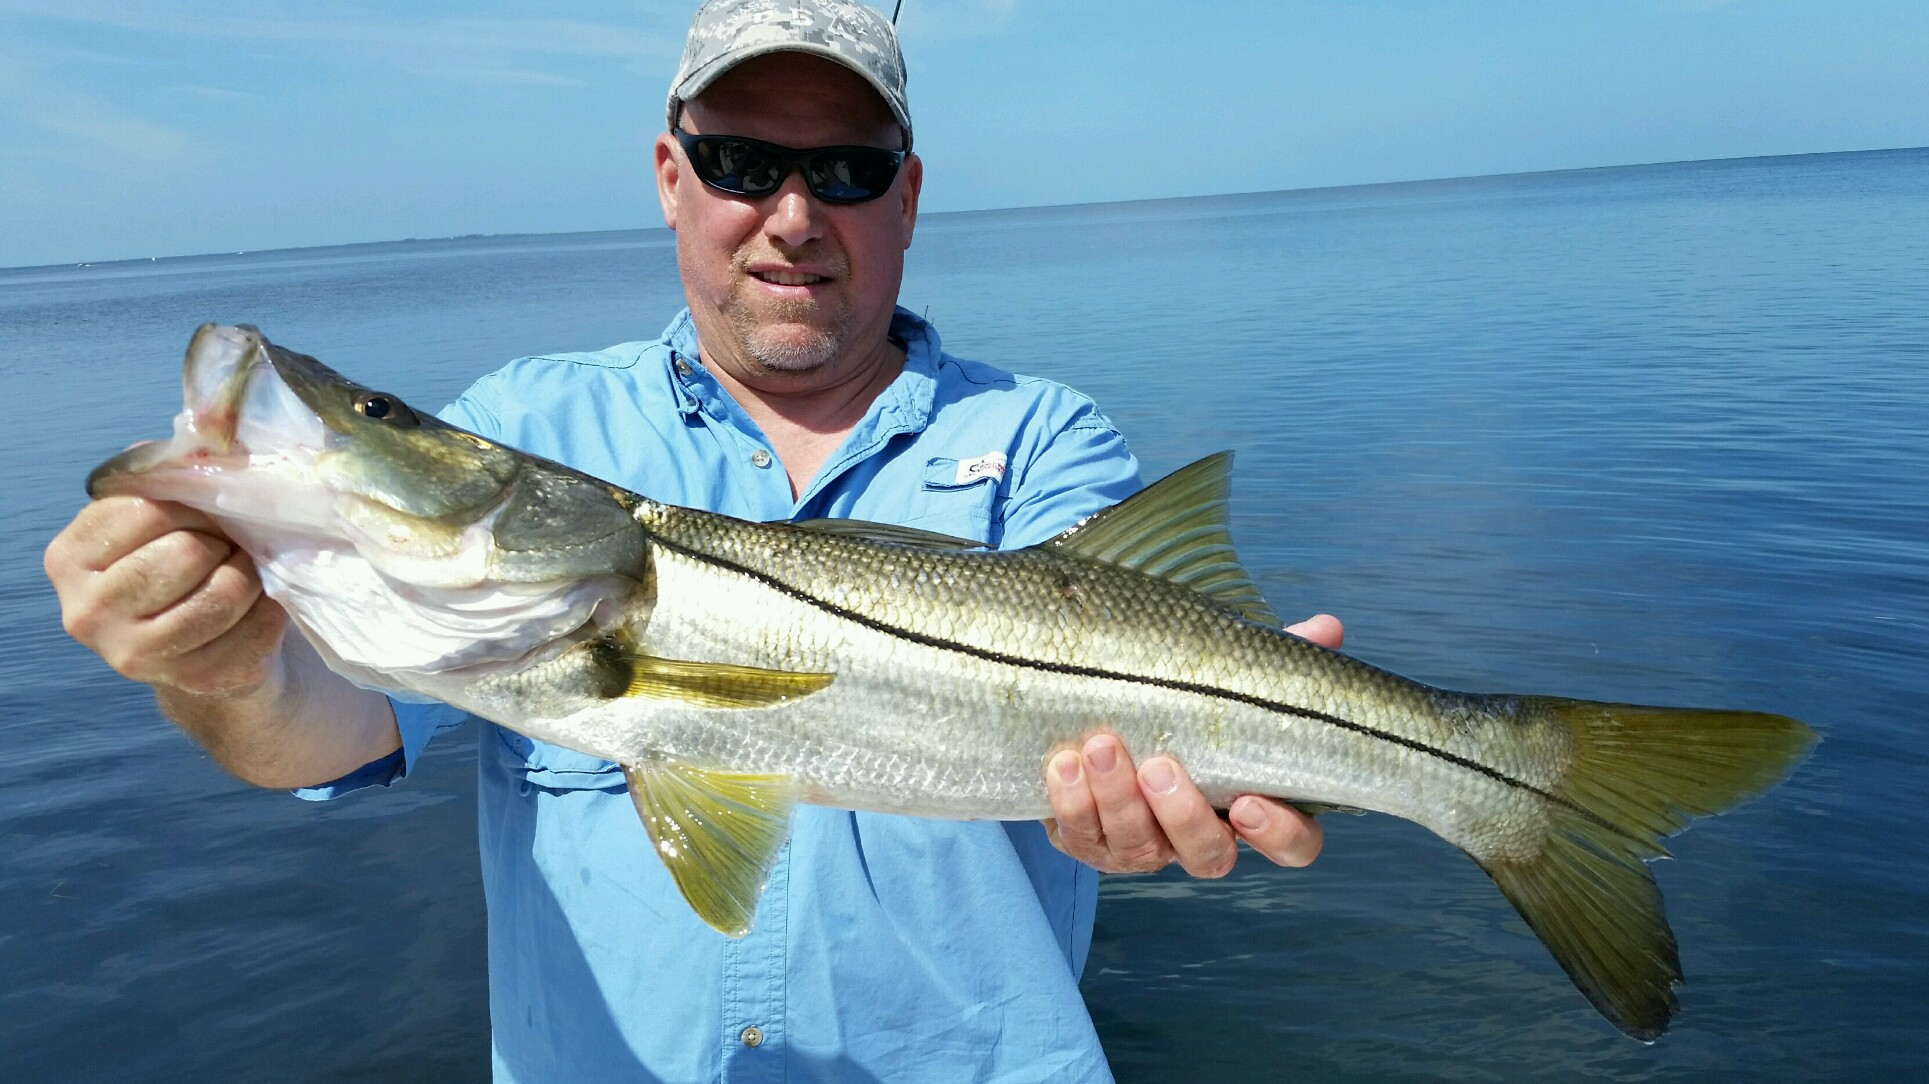 All florida flats fishing species on parade for Fish species in florida